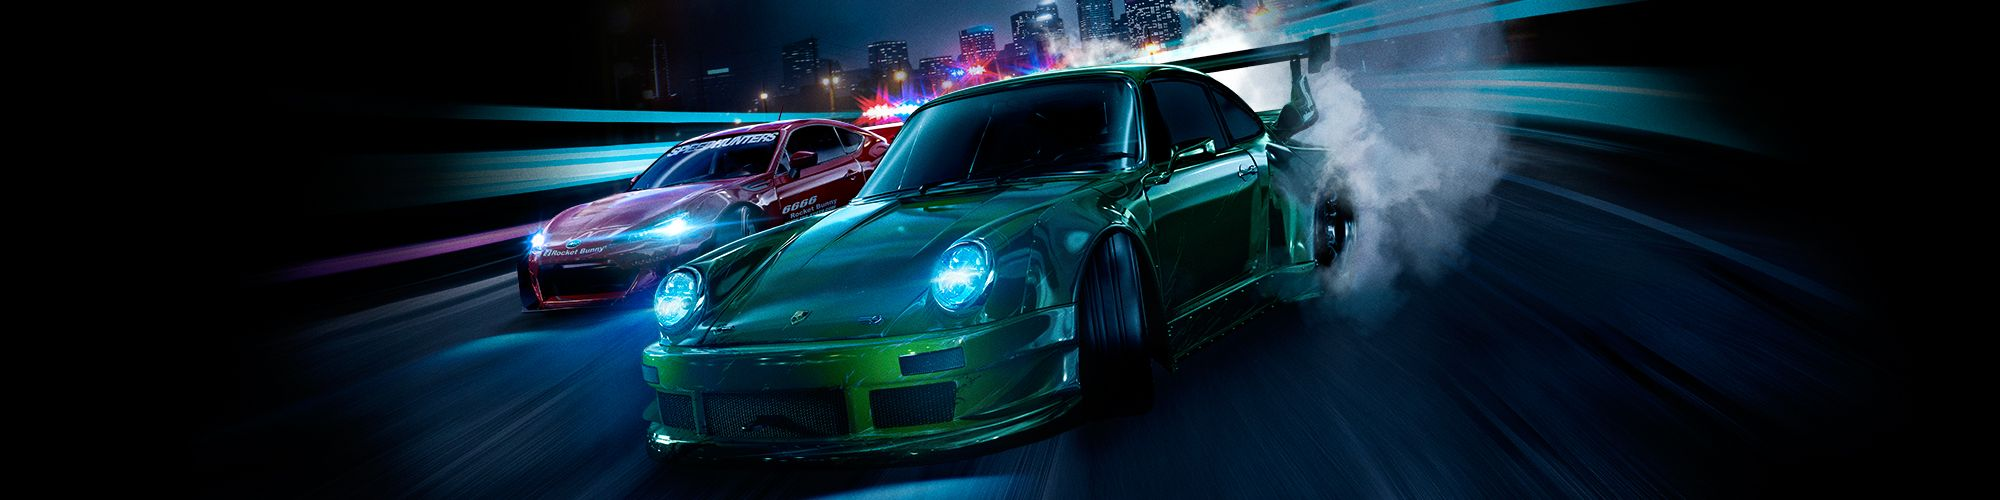 NfS technical specifications for laptop